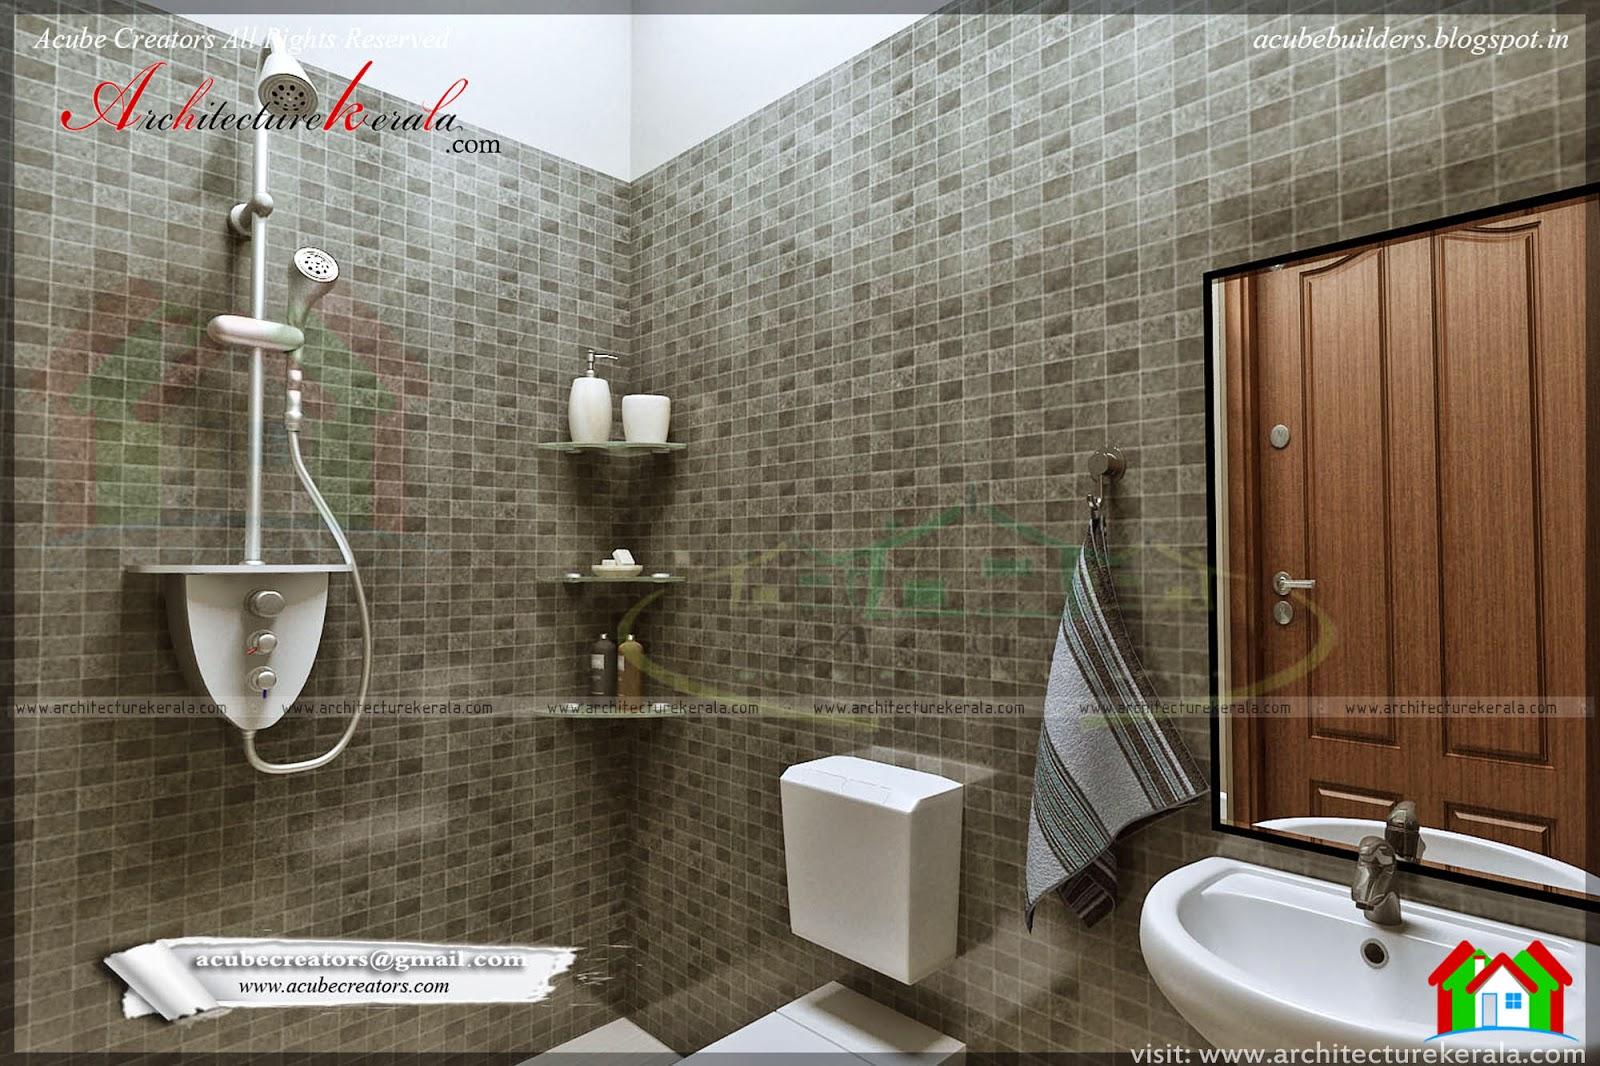 Simple Import Kerala Bathroom Floor Tiles View Bathroom Floor Tiles